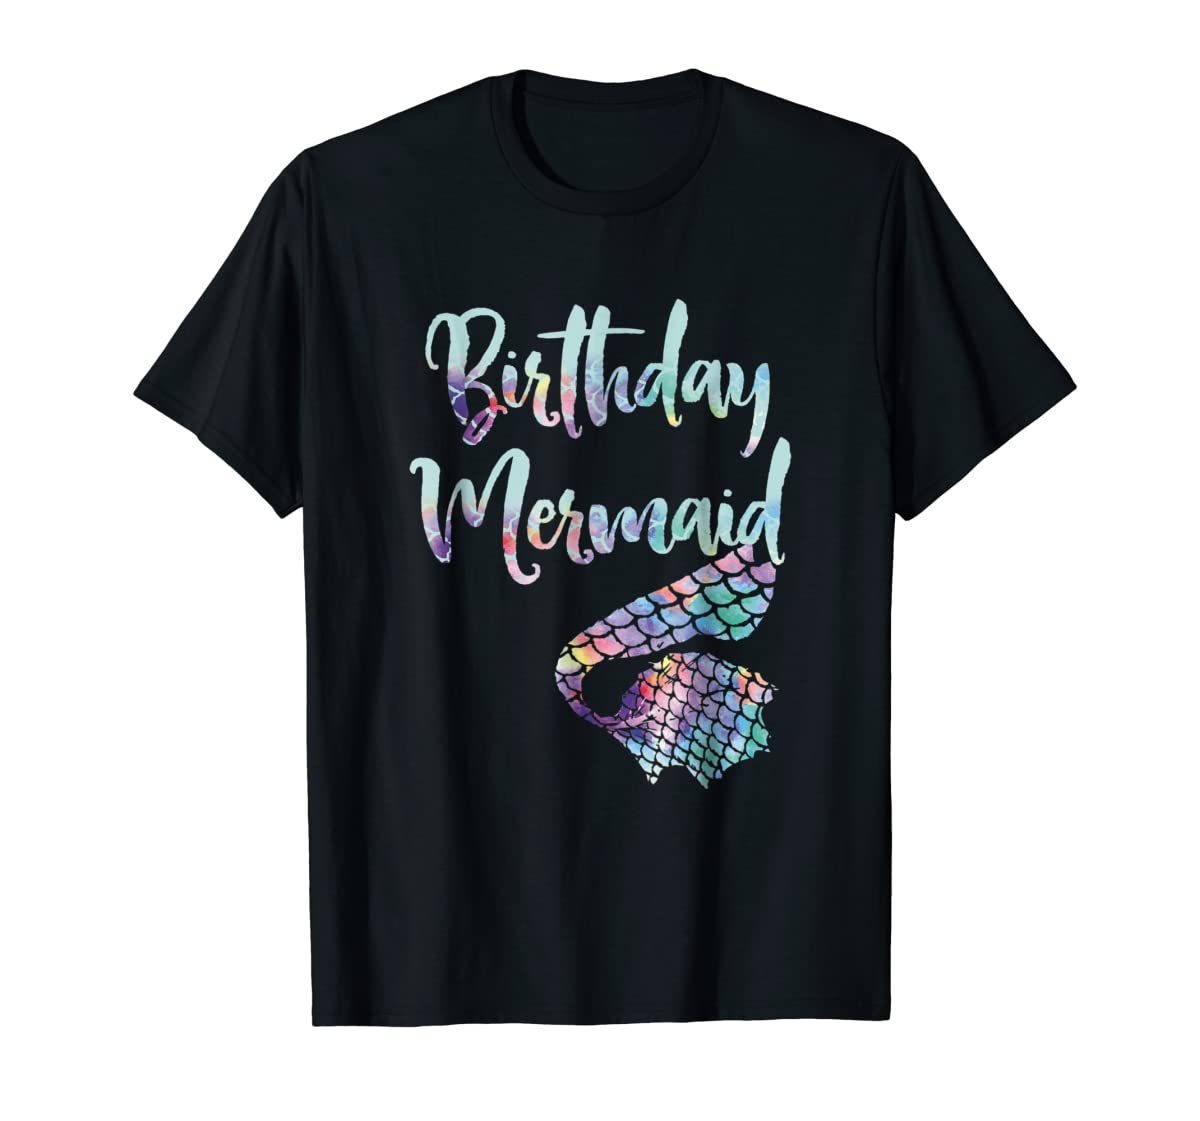 Birthday Mermaid Shirt-Men's T-Shirt-Black